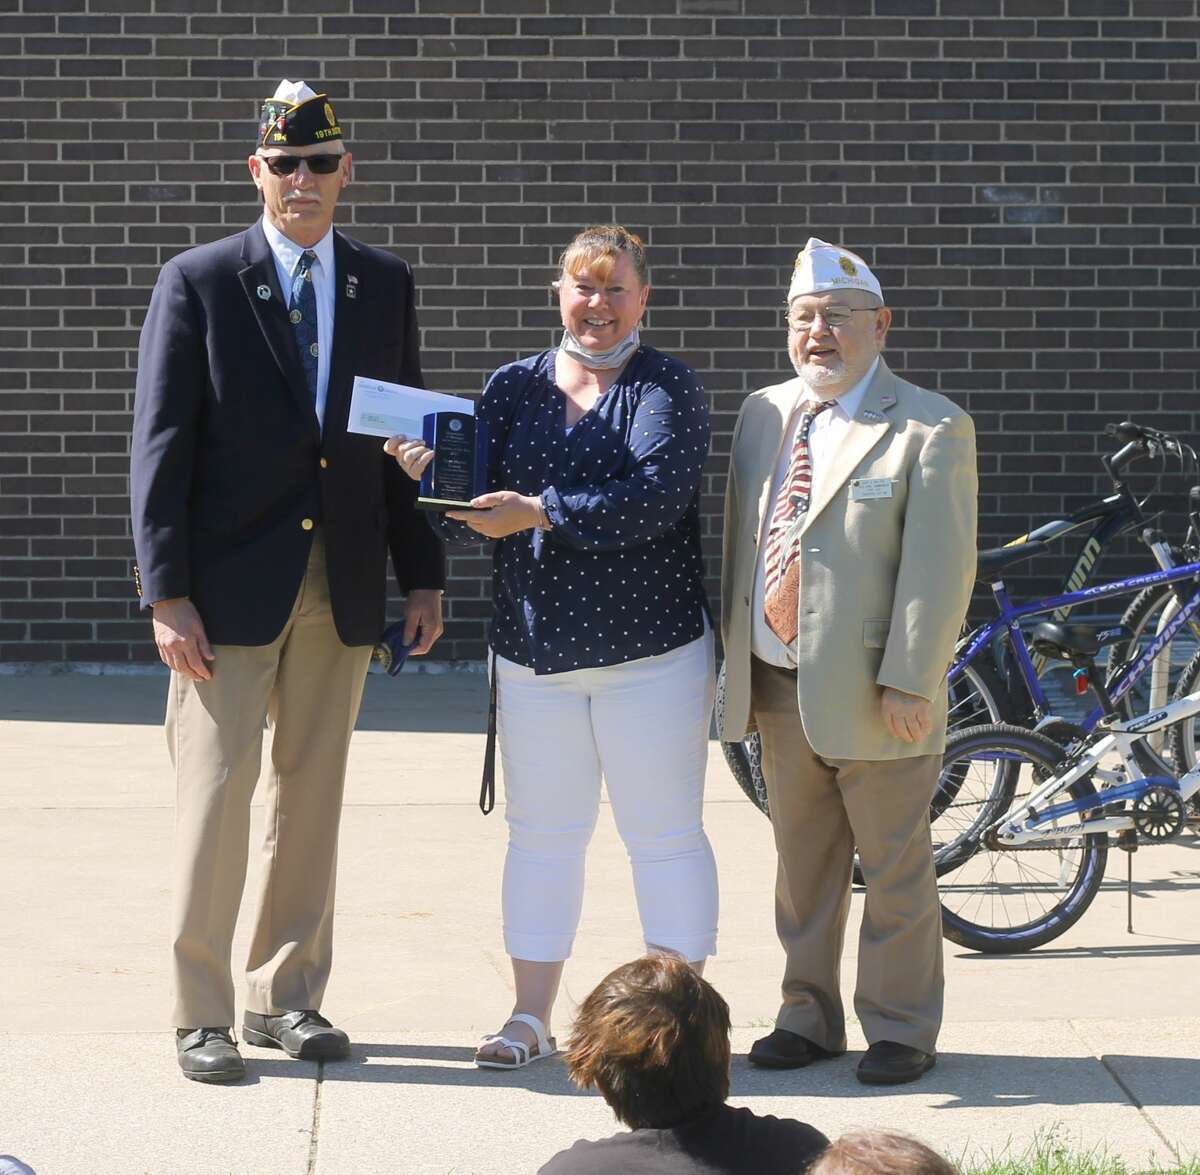 Brian Morrison, American Legion Education and Scholarship Committee member (left), and Gary Walter, vice commander of the Legion for the state of Michigan, present Kennedy Elementary's Tanya Hunter the Zone 4 Teacher of the Year award in front of the school on Wednesday.